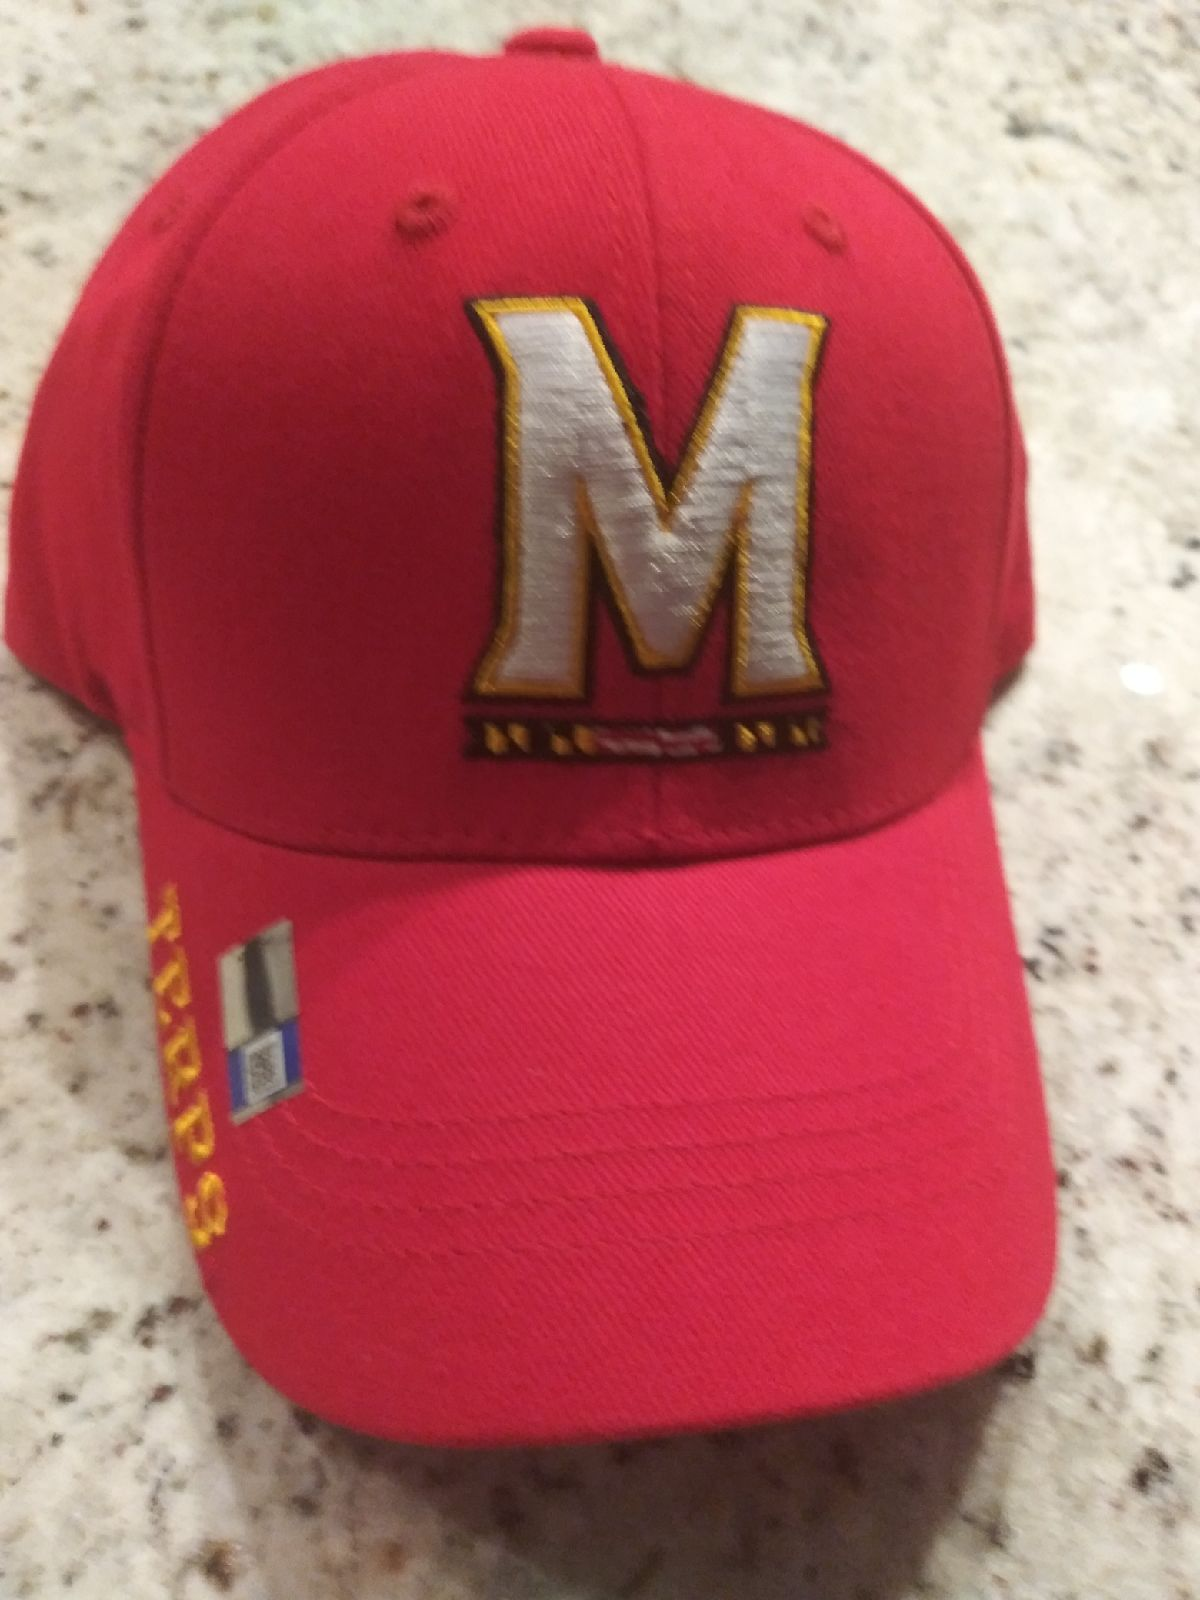 Maryland terrapins hat cap new w tags